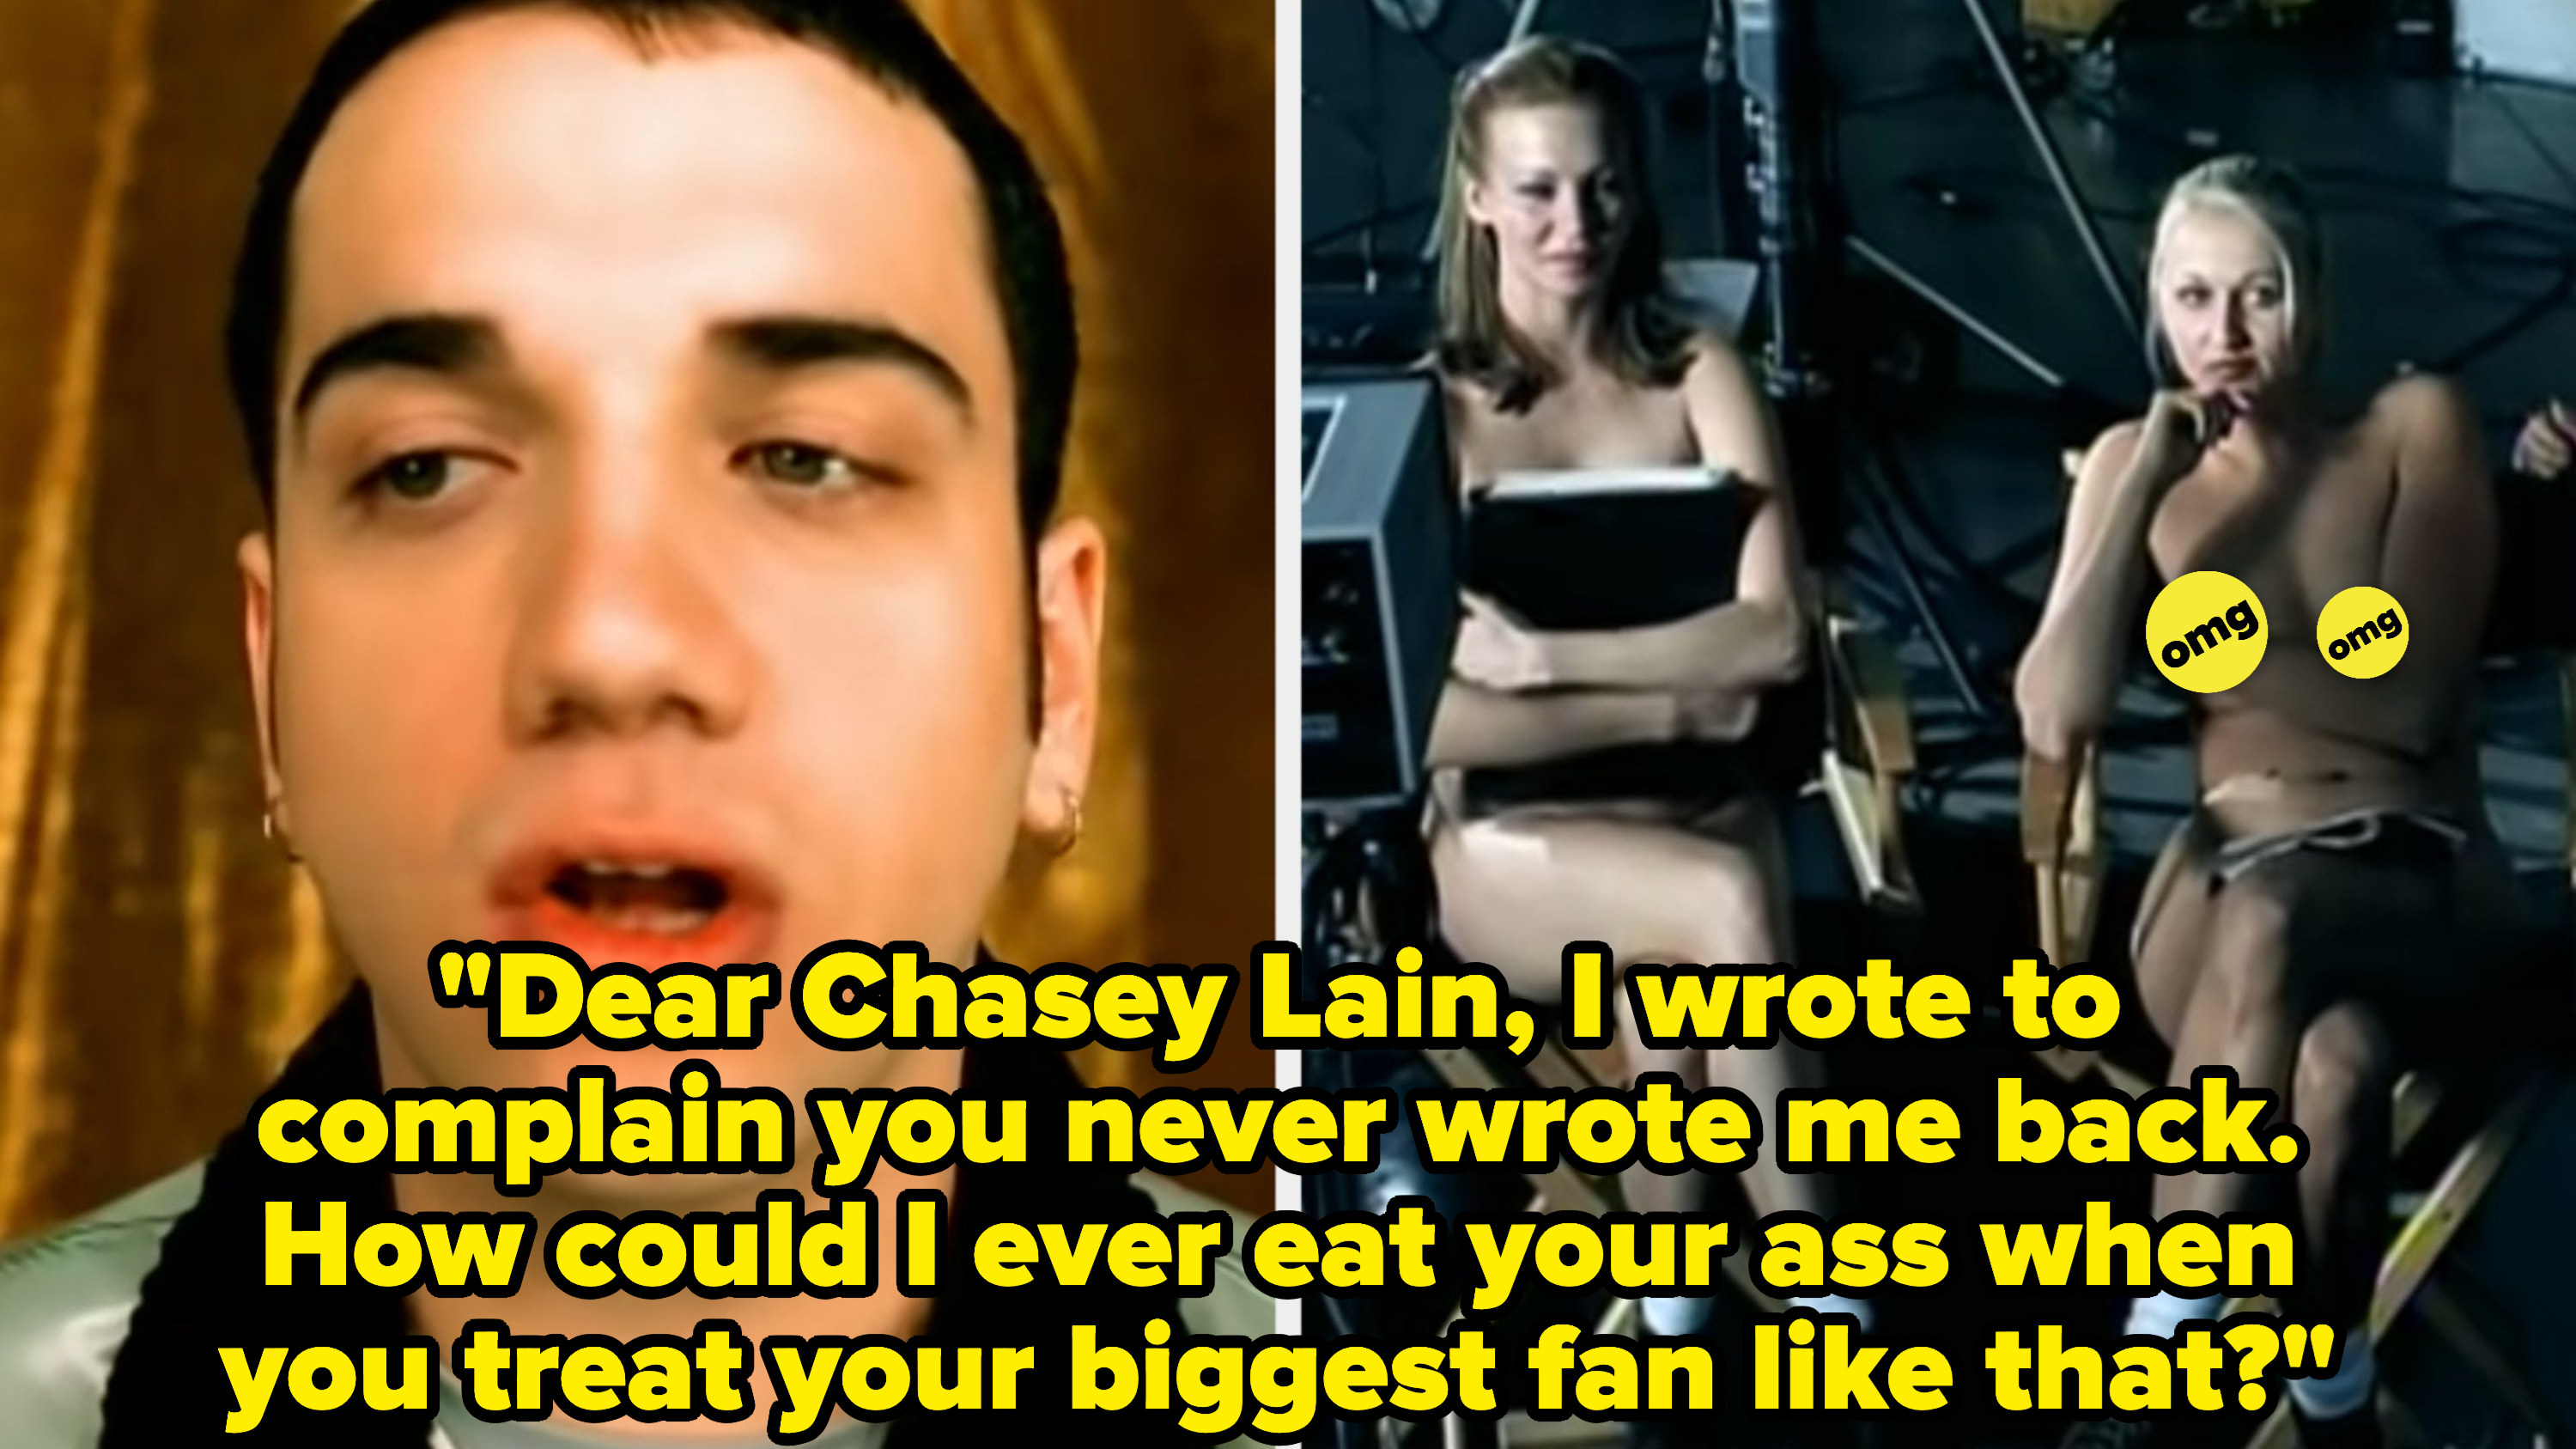 """Bloodhound Gang singing: """"Dear Chasey Lain, I wrote to complain you never wrote me back. How could I ever eat your ass when you treat your biggest fan like that?"""""""